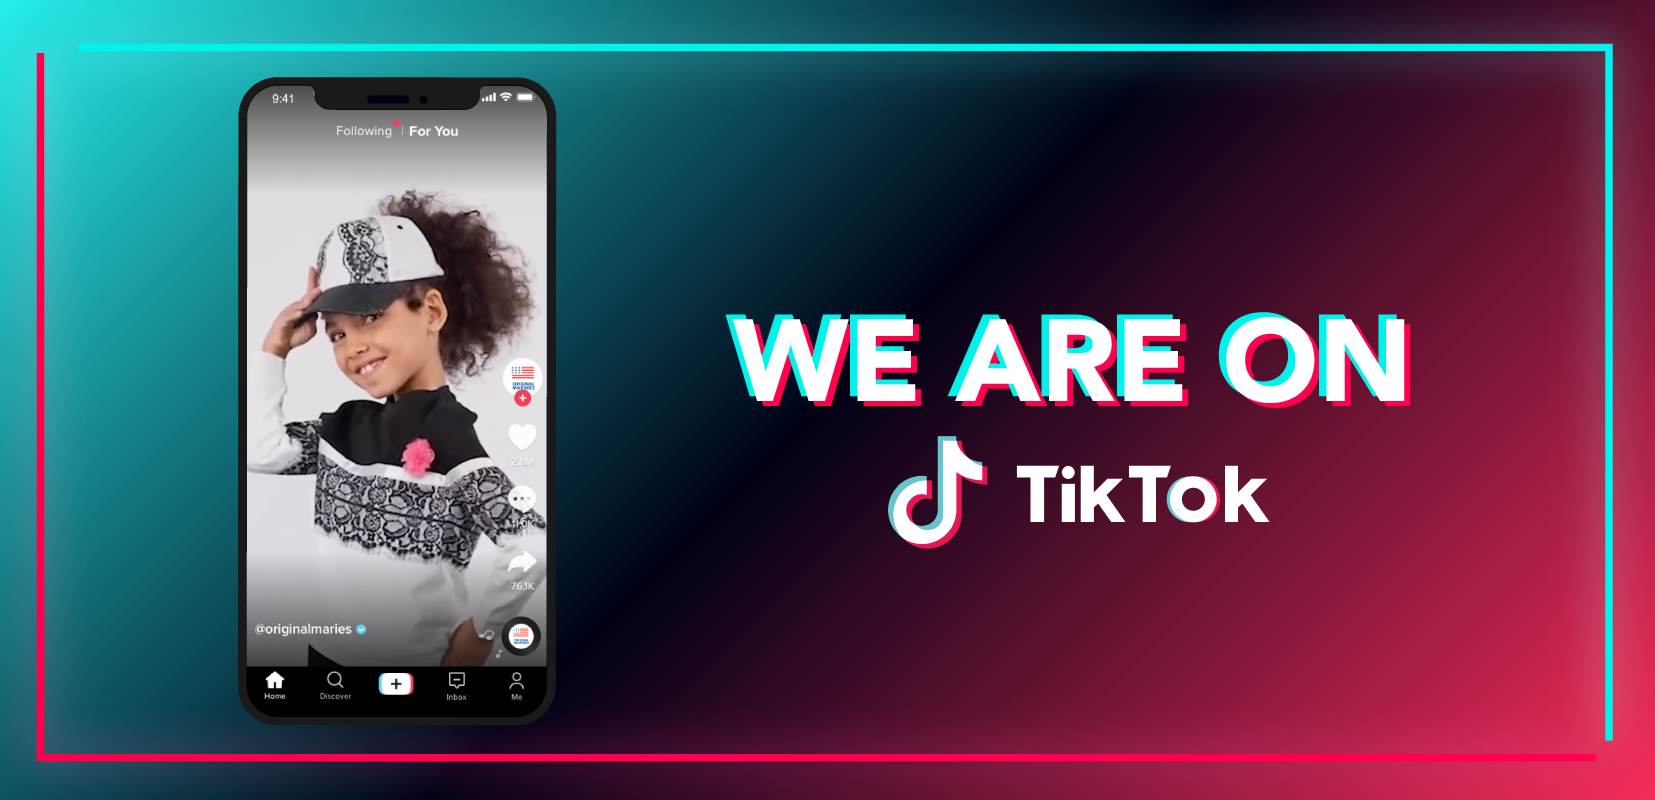 Tick tock, tick tock… it's time to let loose on TikTok.